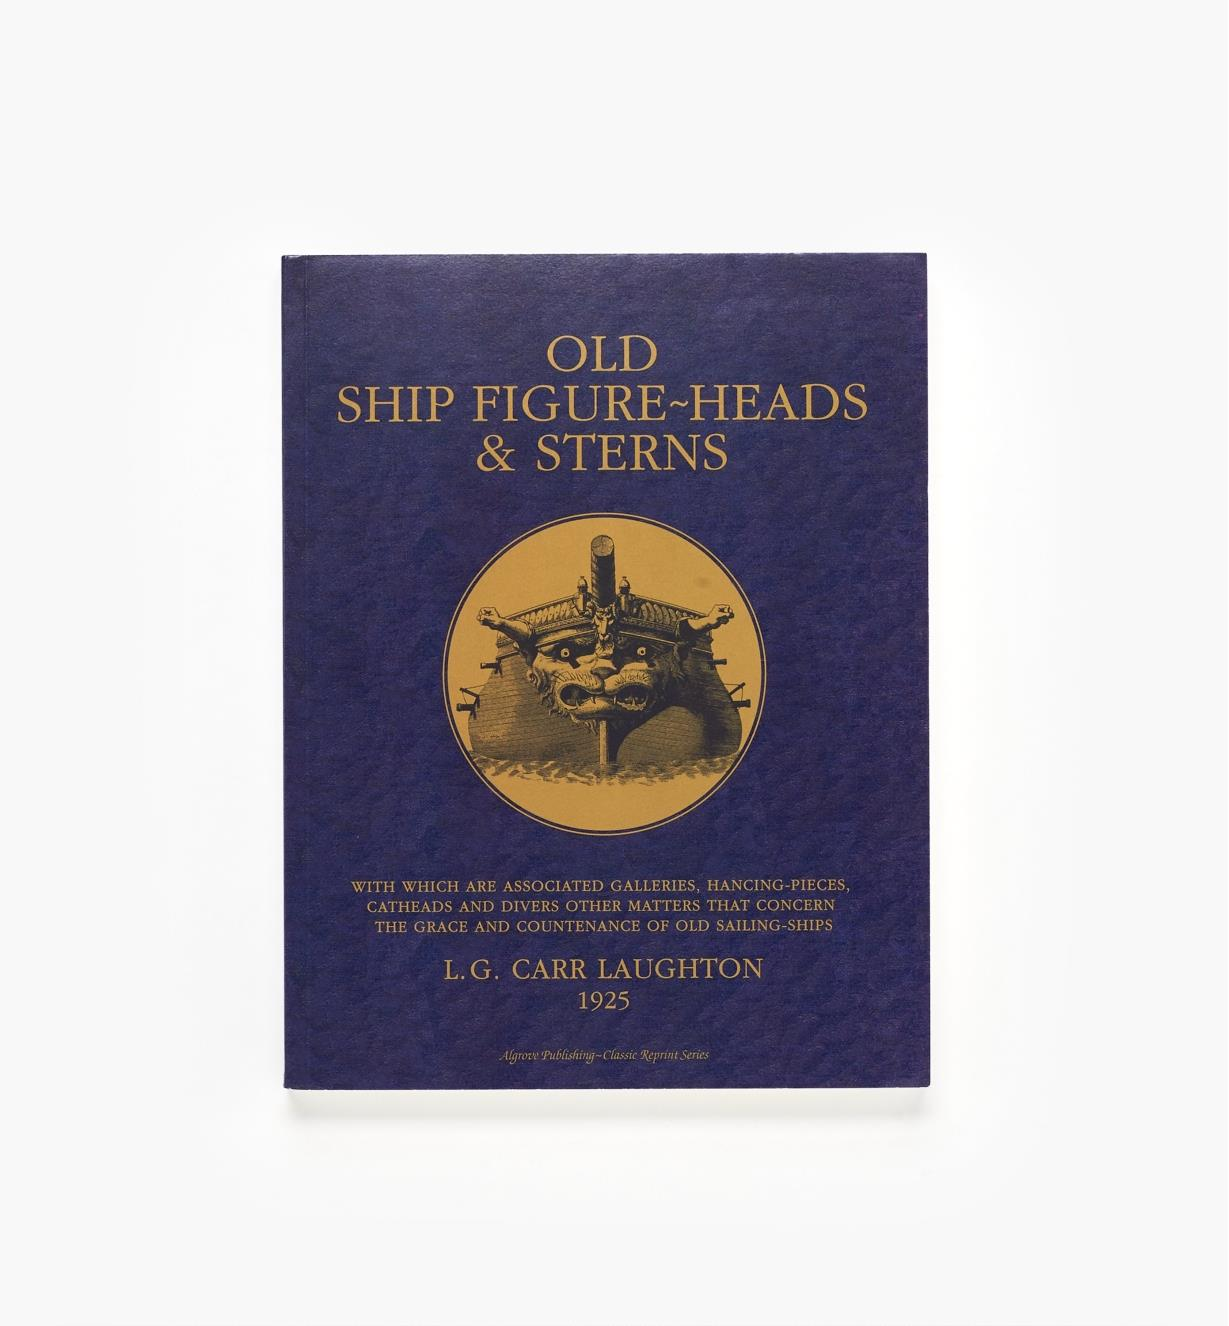 49L8129 - Old Ship Figure-Heads & Sterns